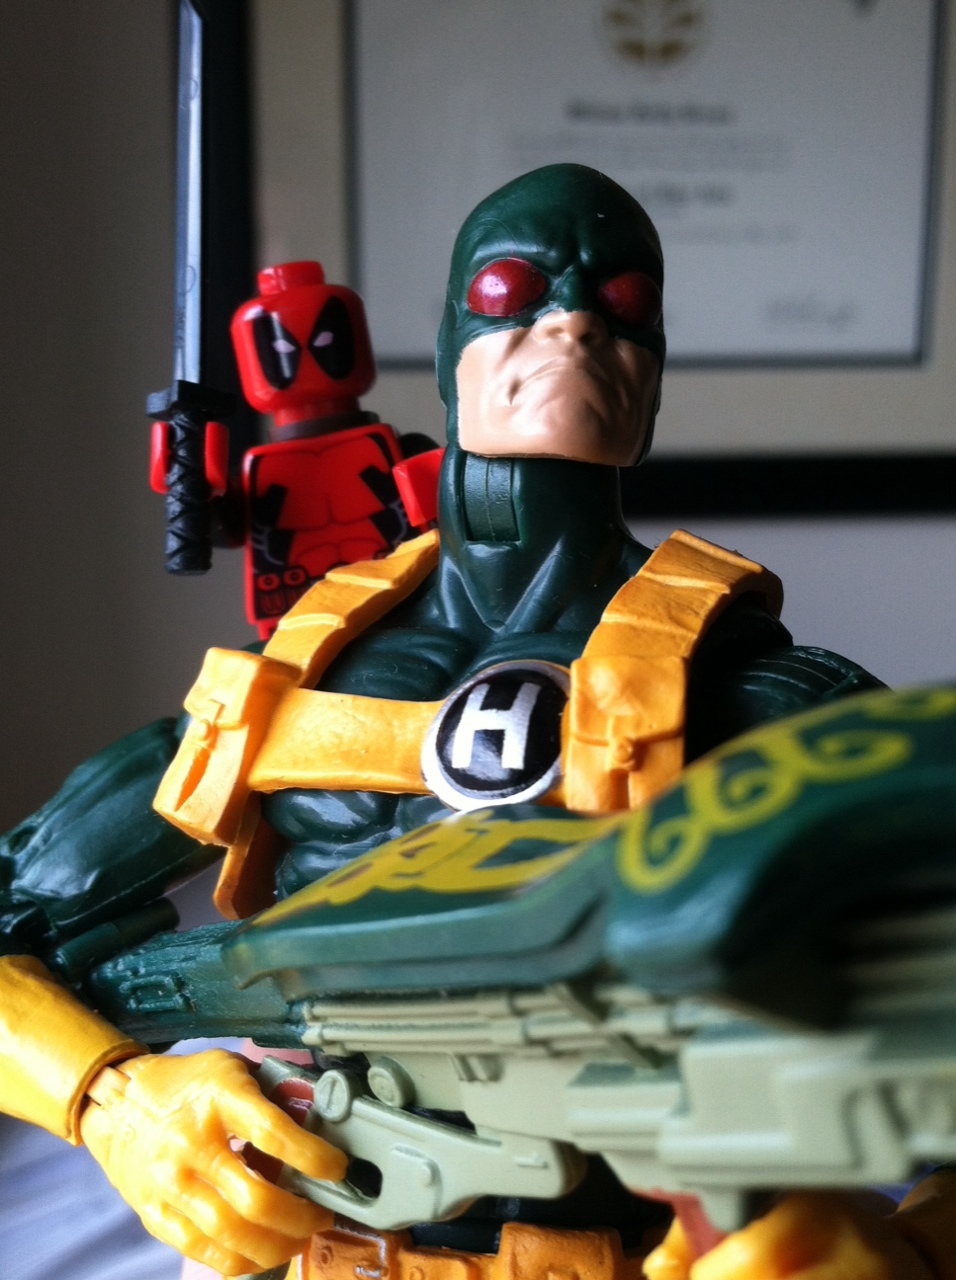 Bob and Deadpool reliving their first meeting.